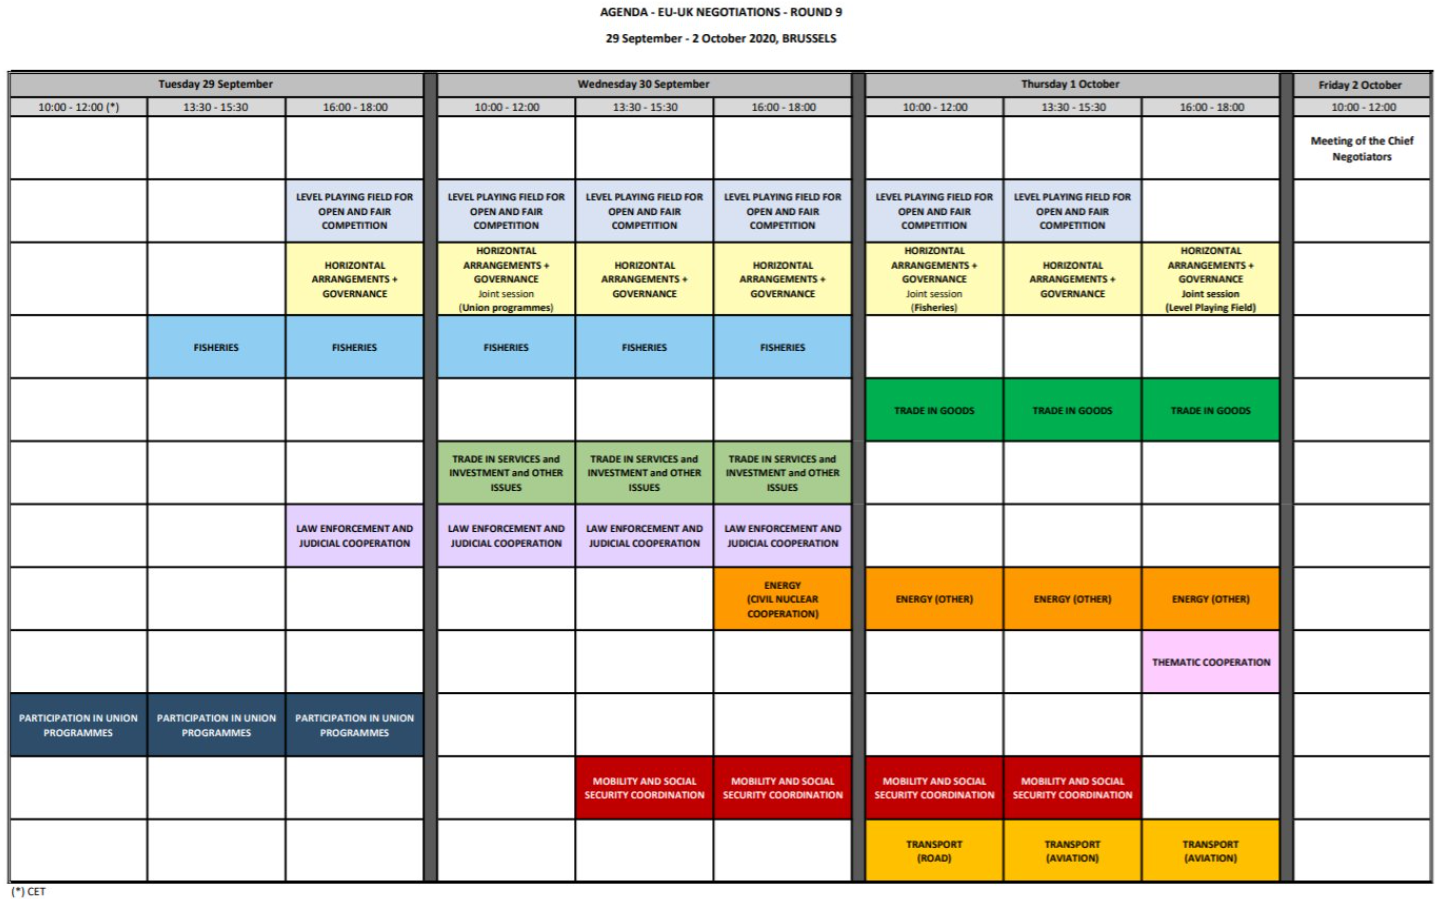 All the times in the table below are CET. The talks are taking place in Brussels.